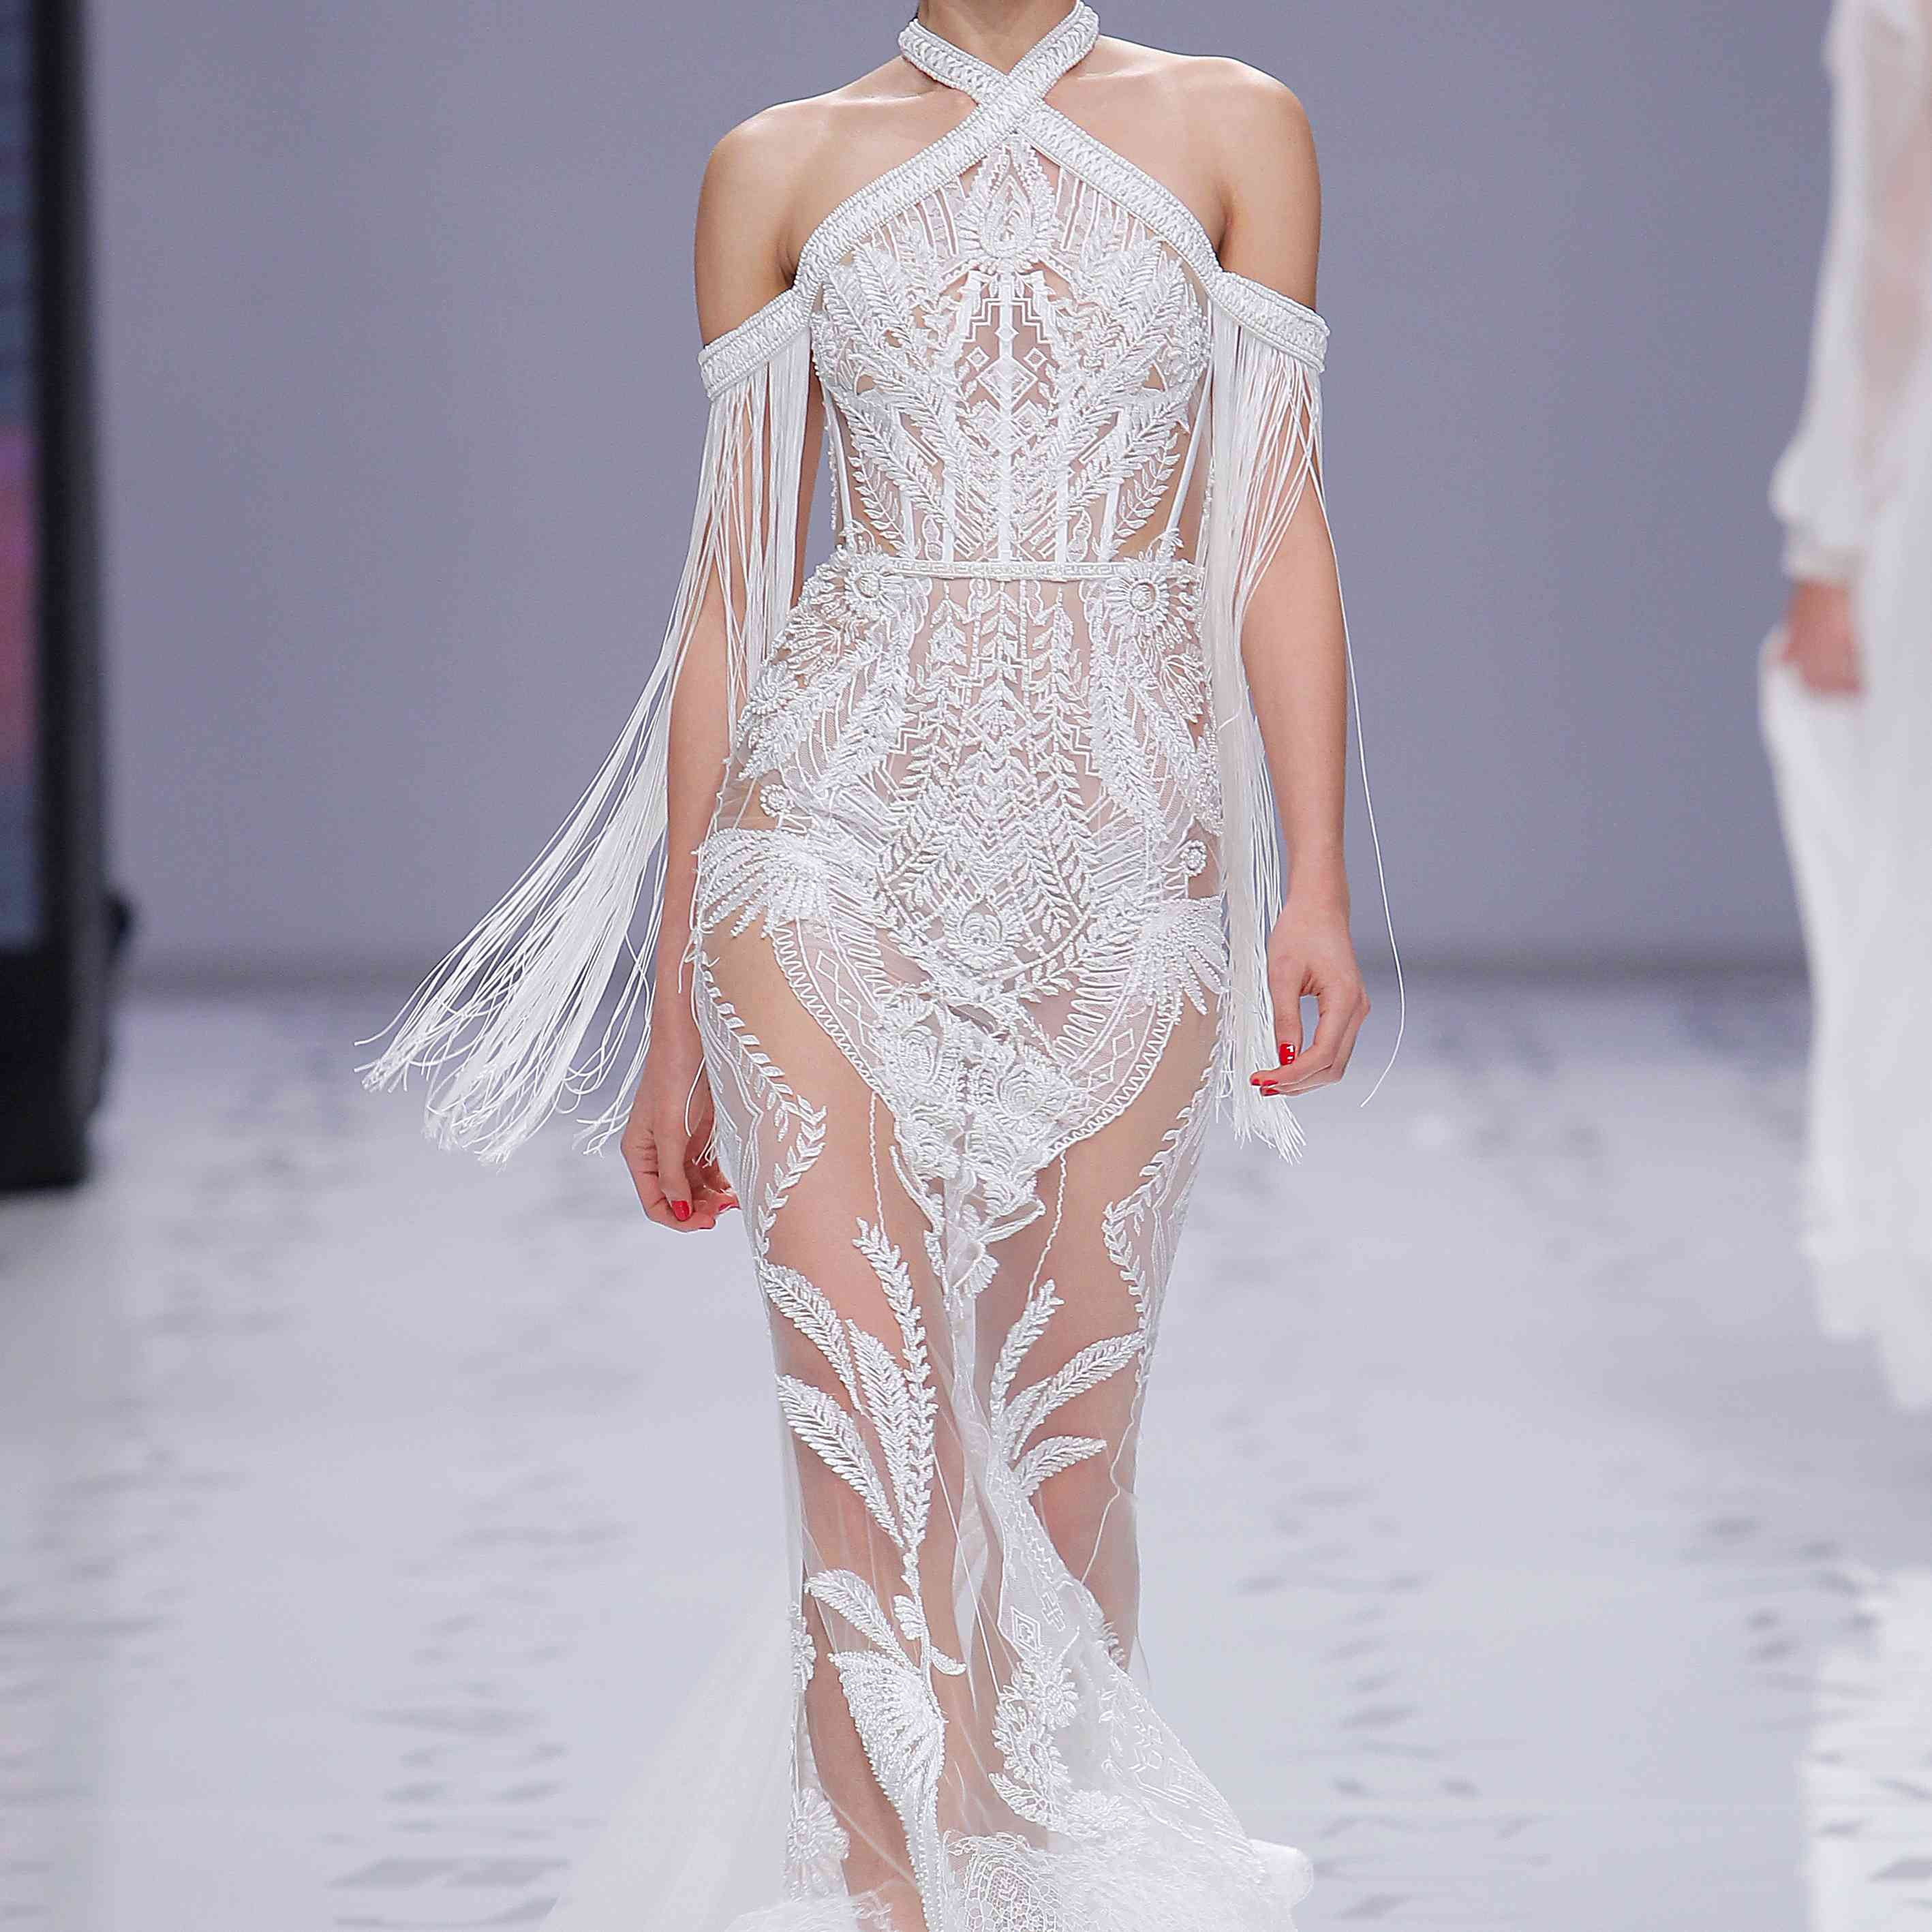 Model in a lace-embroidered sheer tulle mermaid gown with a halter neckline and off-the-shoulder fringe sleeves